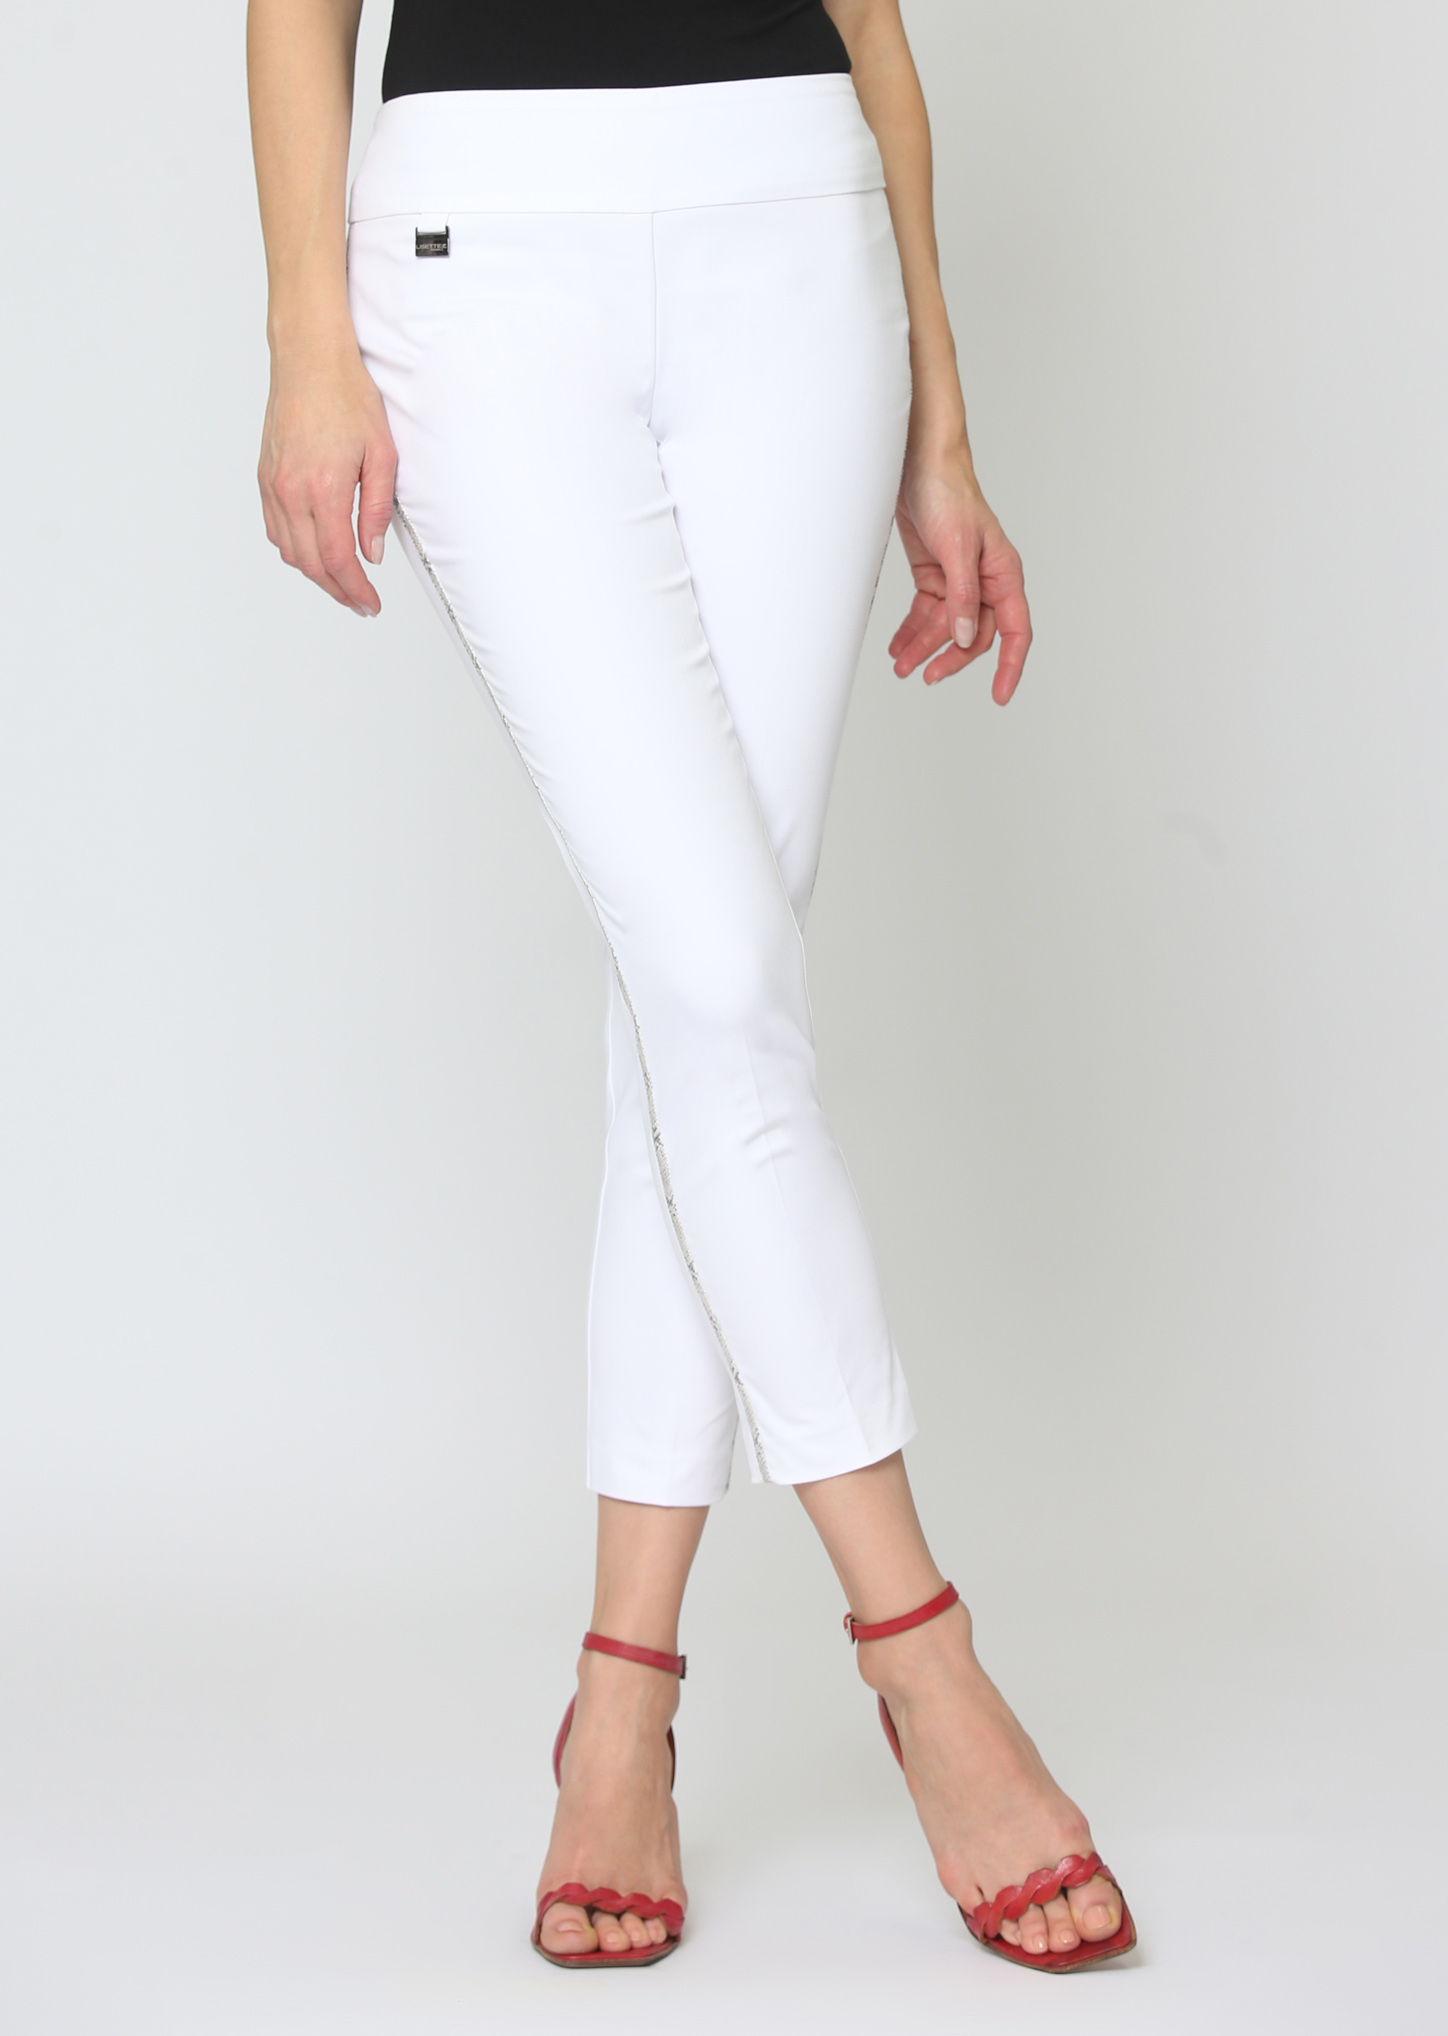 Lisette L. Crop Ankle Pant Style 260873 Jupiter Snakeskin Trim Color White